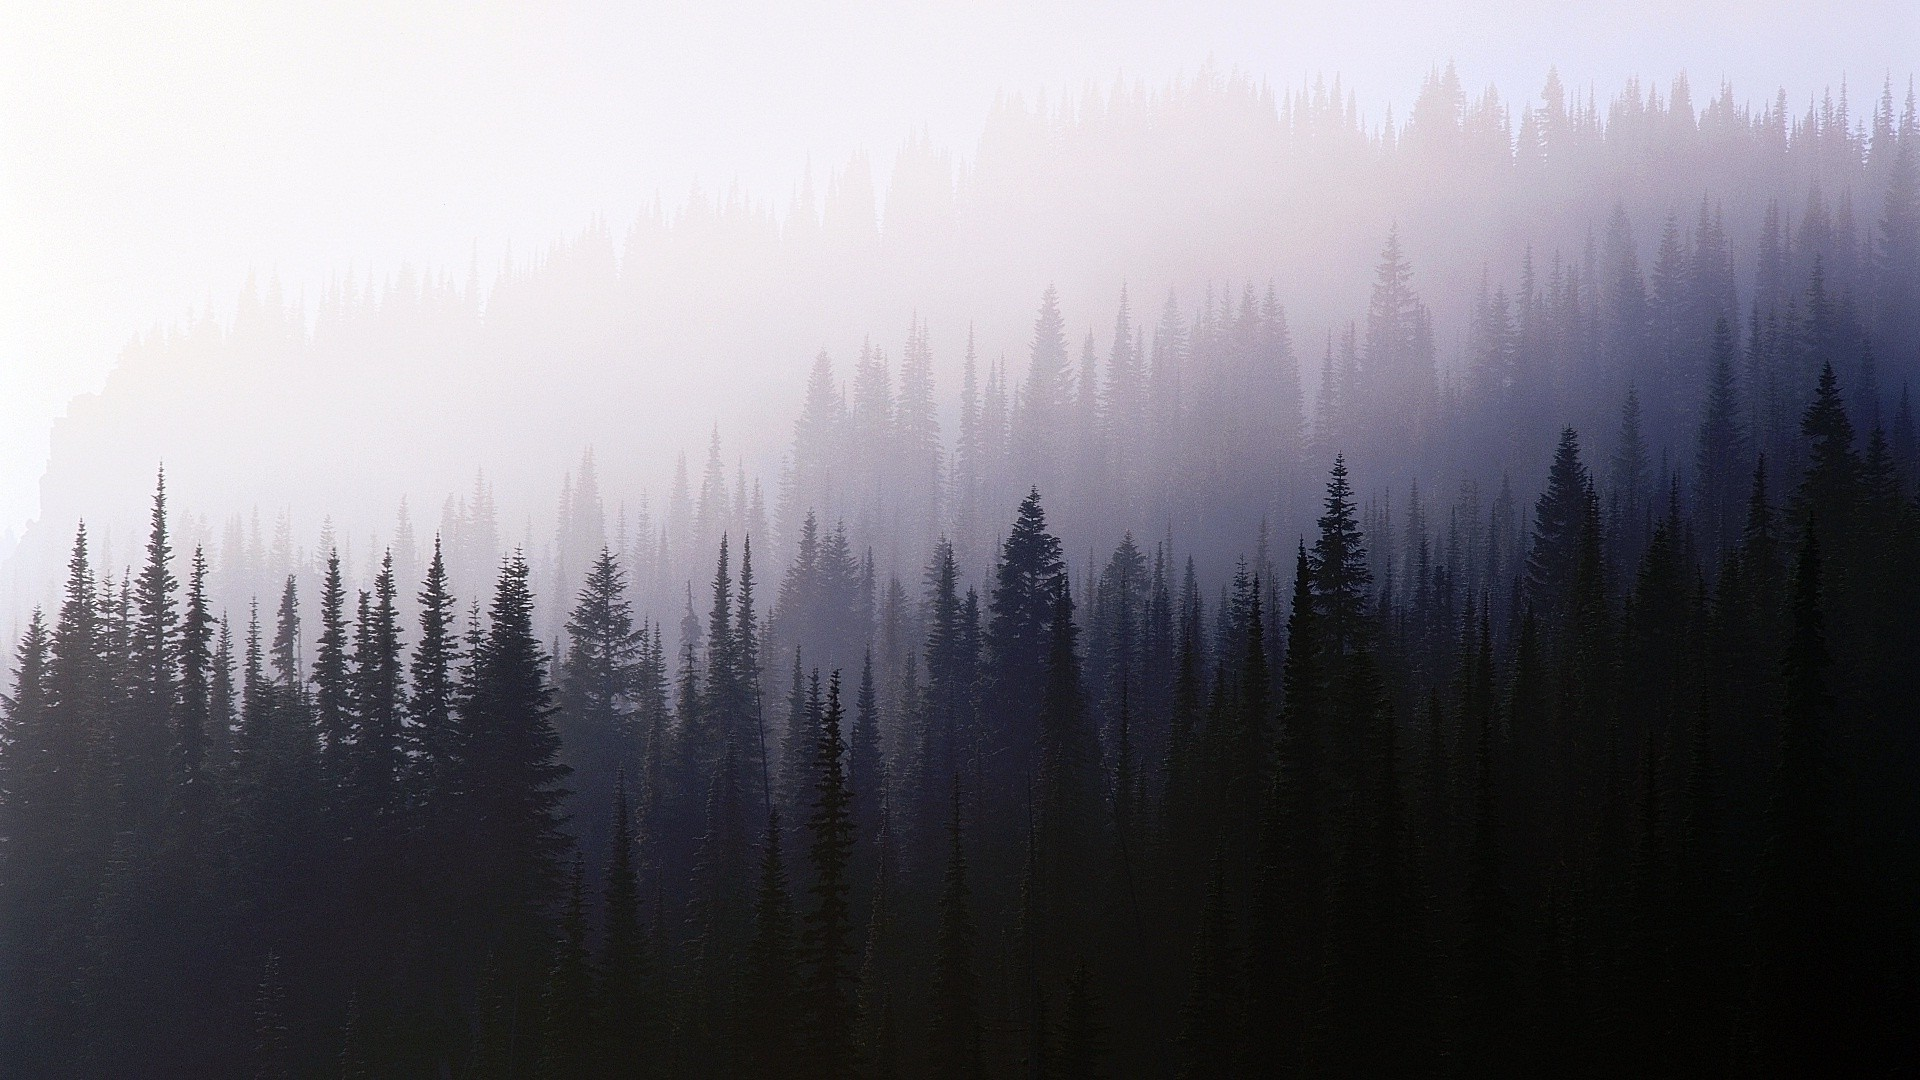 Iphone 5 Fall Wallpaper Forest Trees Nature Mist Wallpapers Hd Desktop And